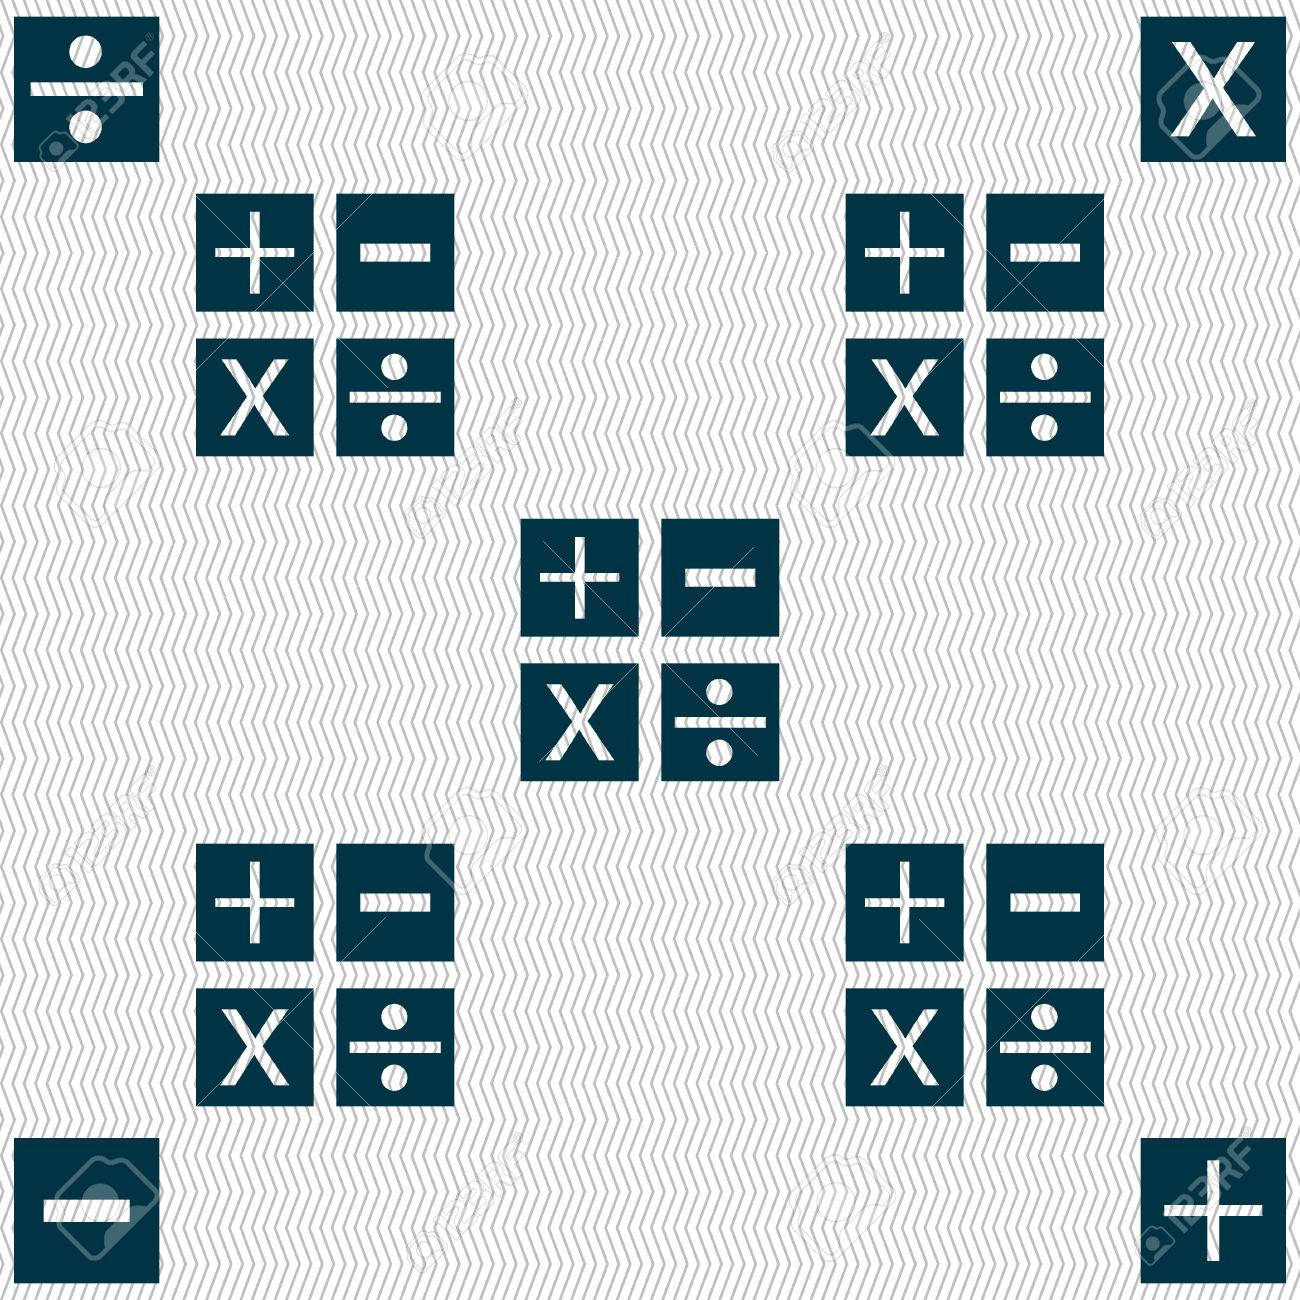 Multiplication division plus minus icon math symbol mathematics multiplication division plus minus icon math symbol mathematics seamless abstract background with biocorpaavc Image collections